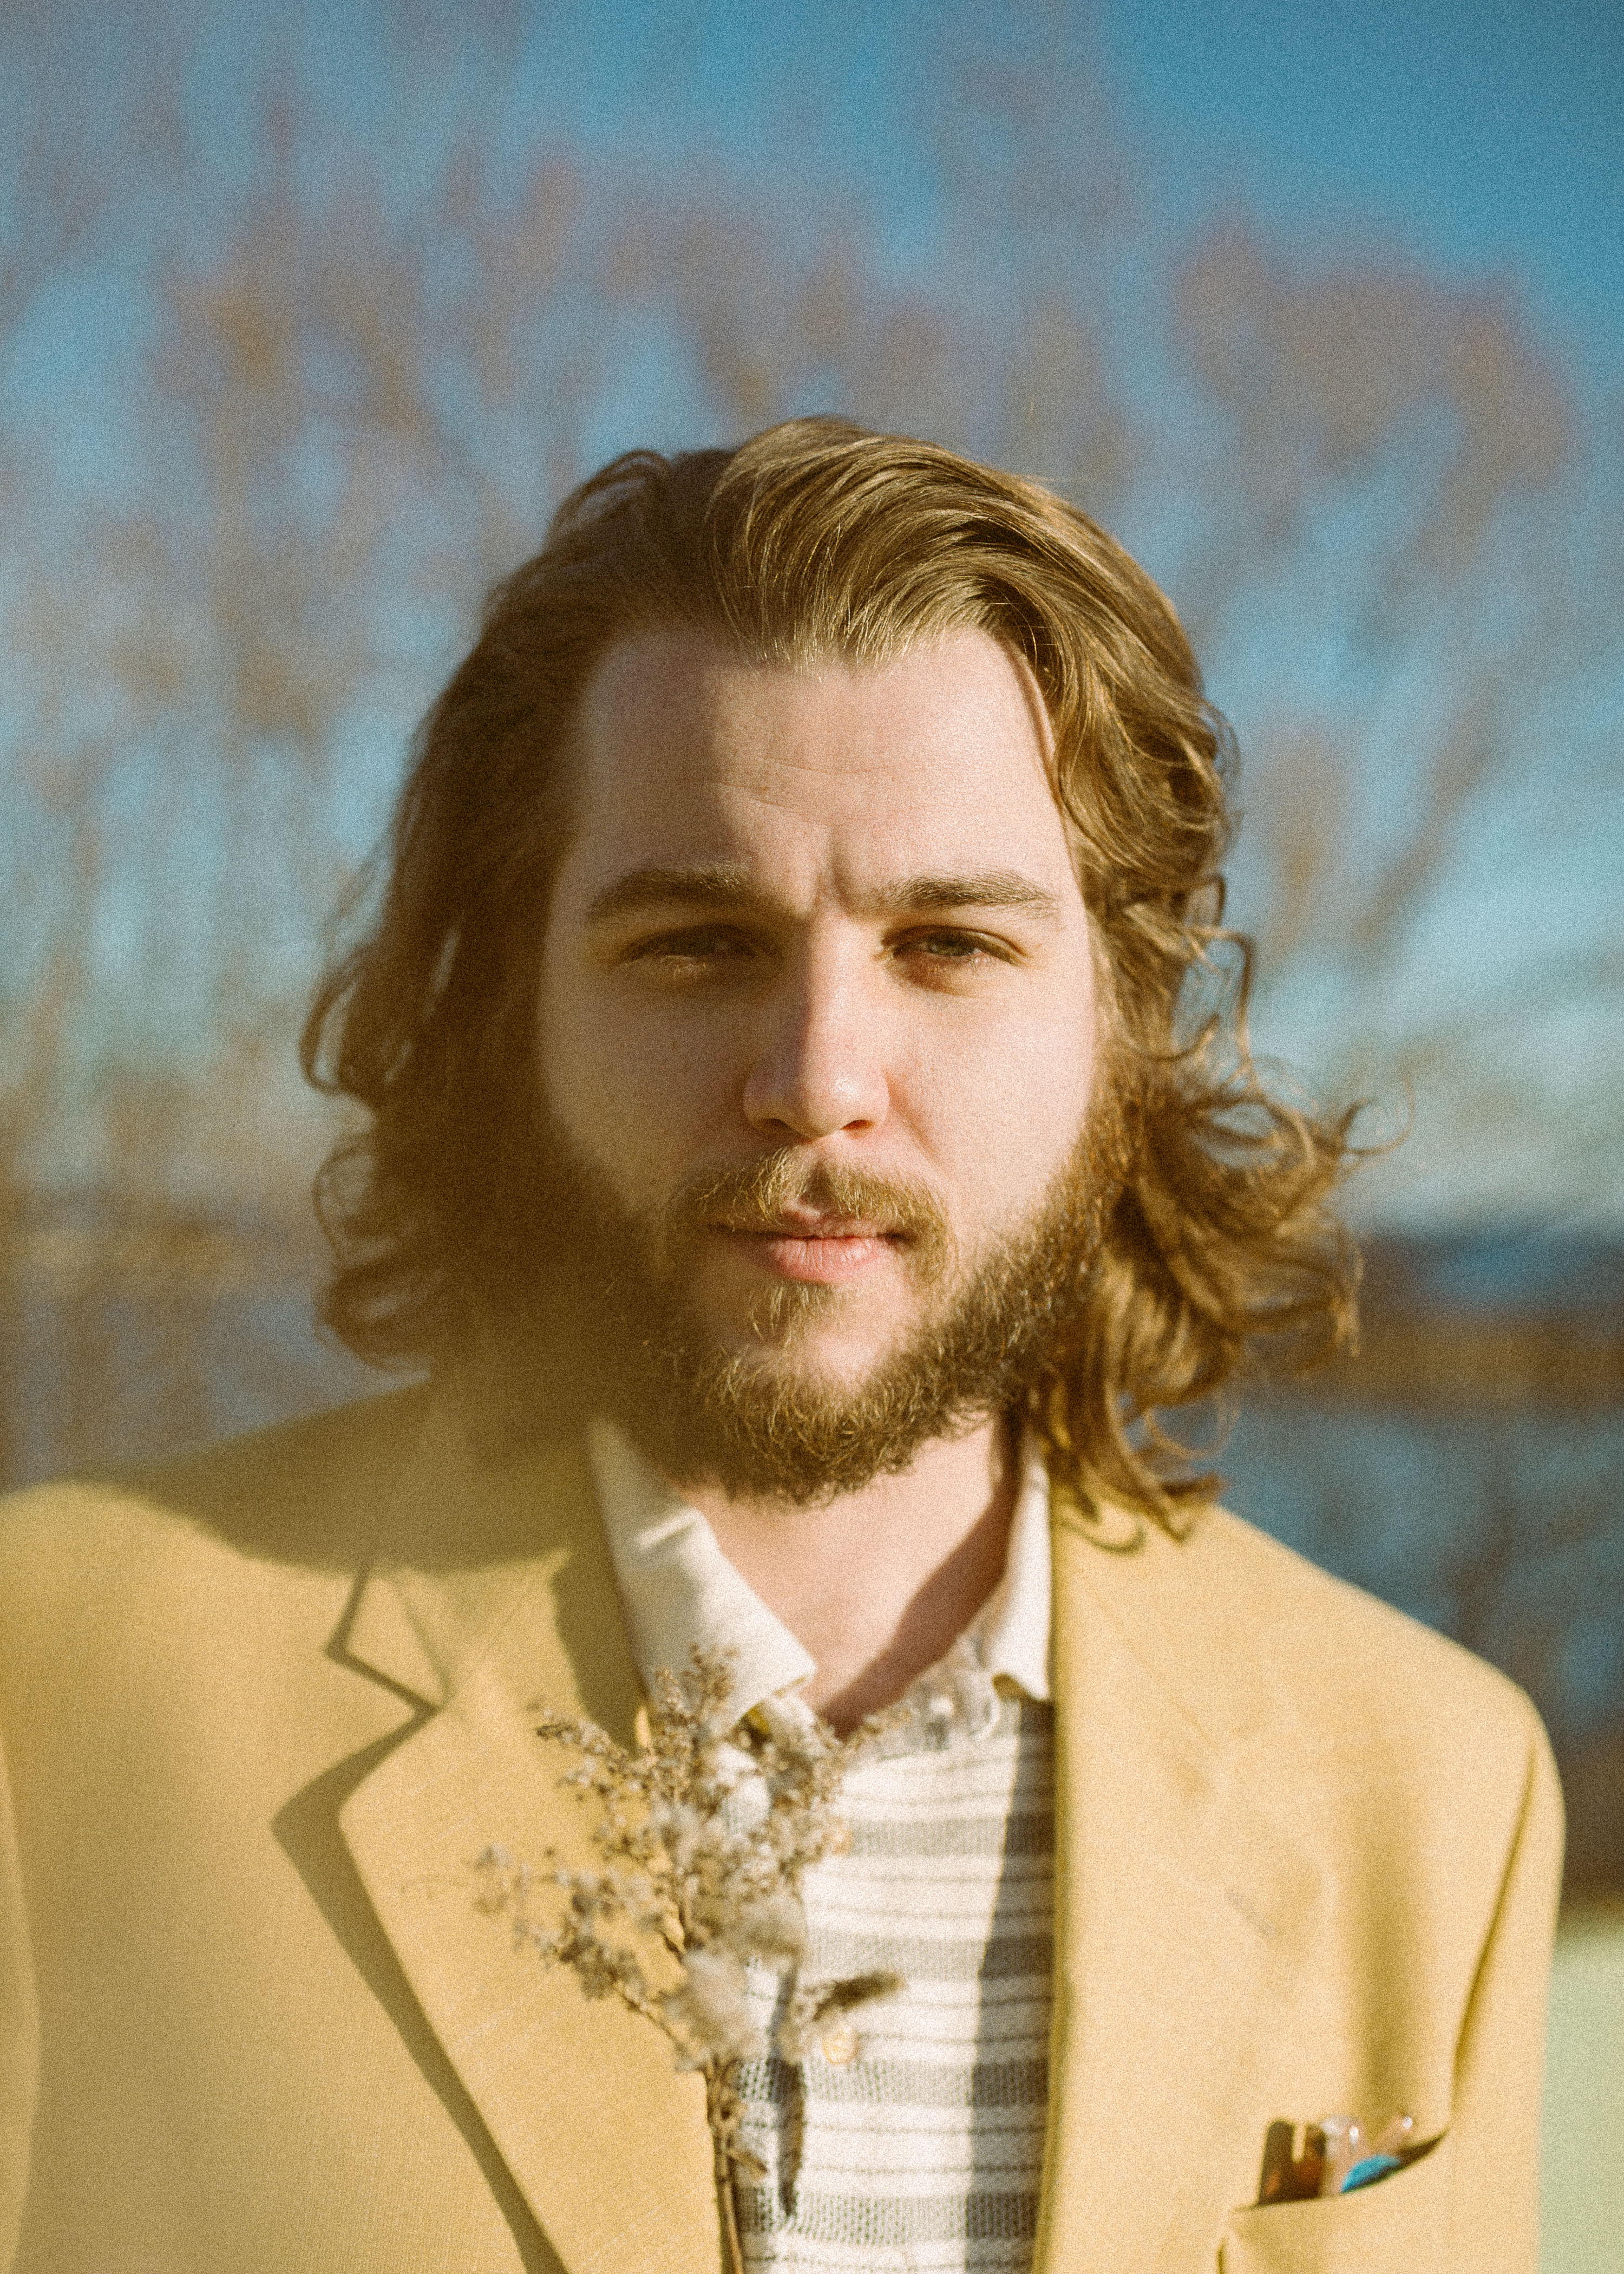 A picture of Nate Bain wearing a yellow/beige jacket, in an outdoor environment